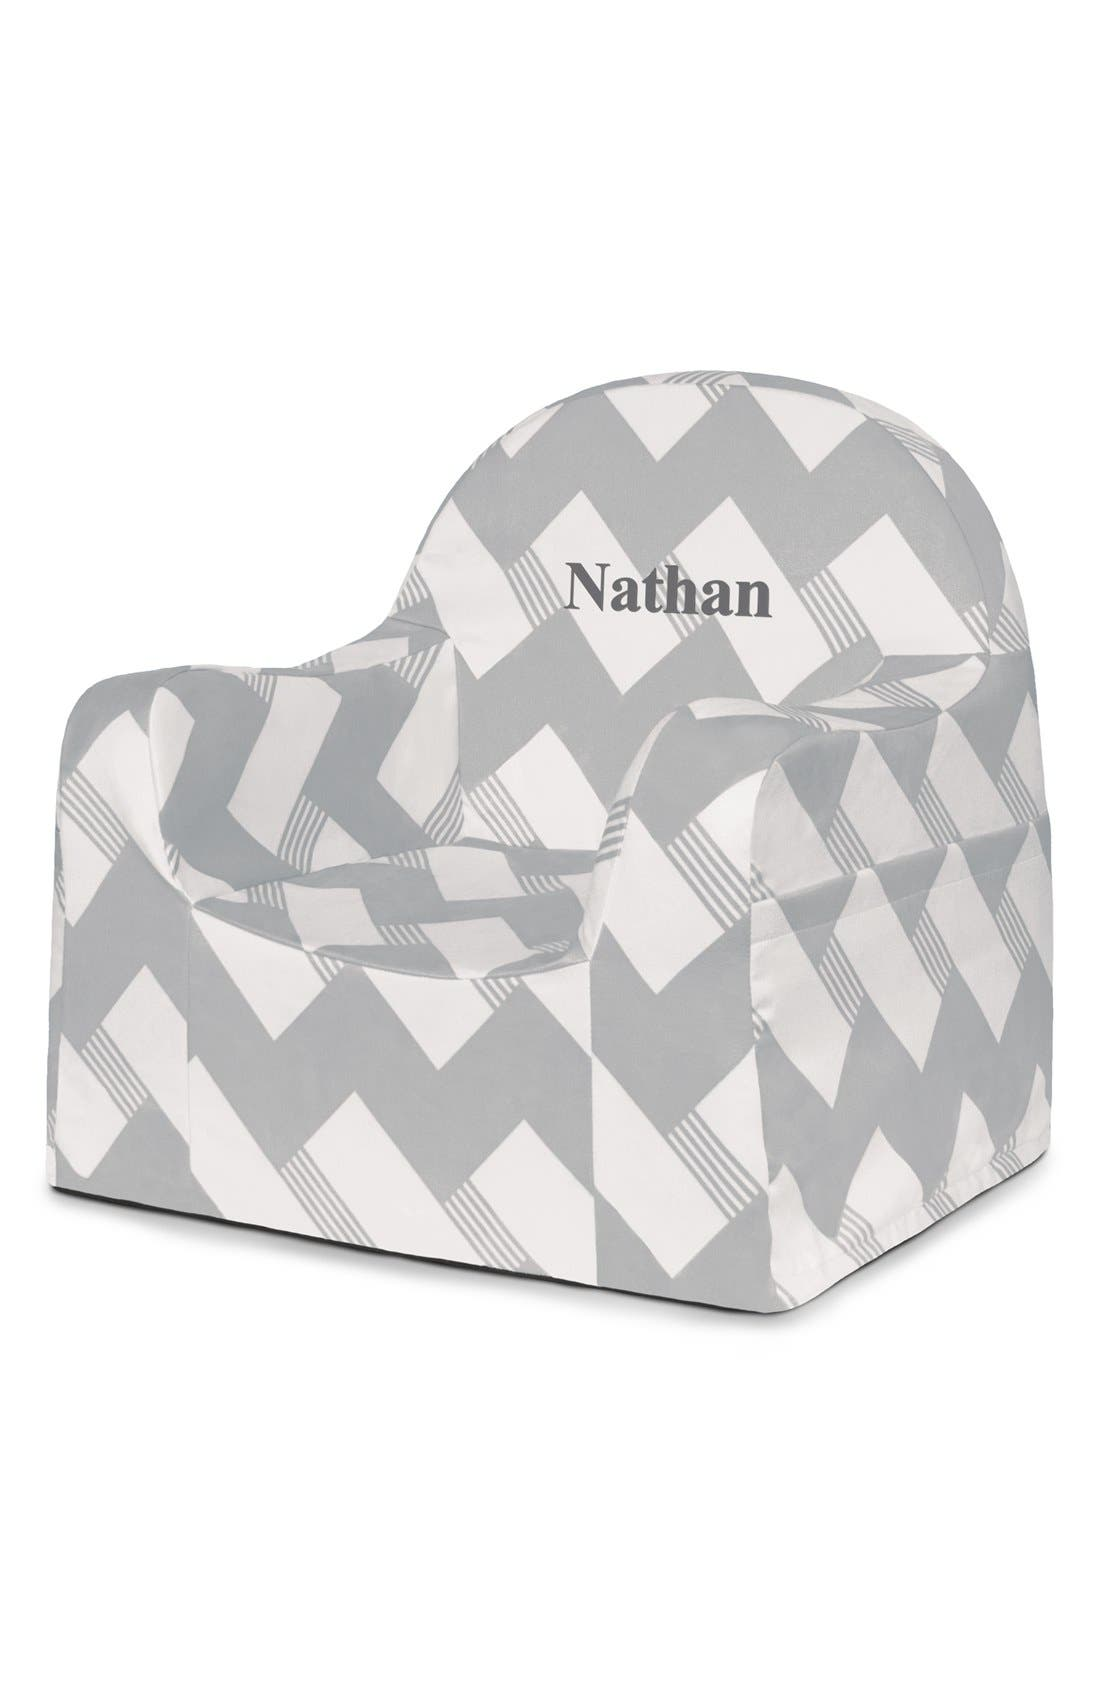 'Personalized Little Reader' Chair,                         Main,                         color, 020